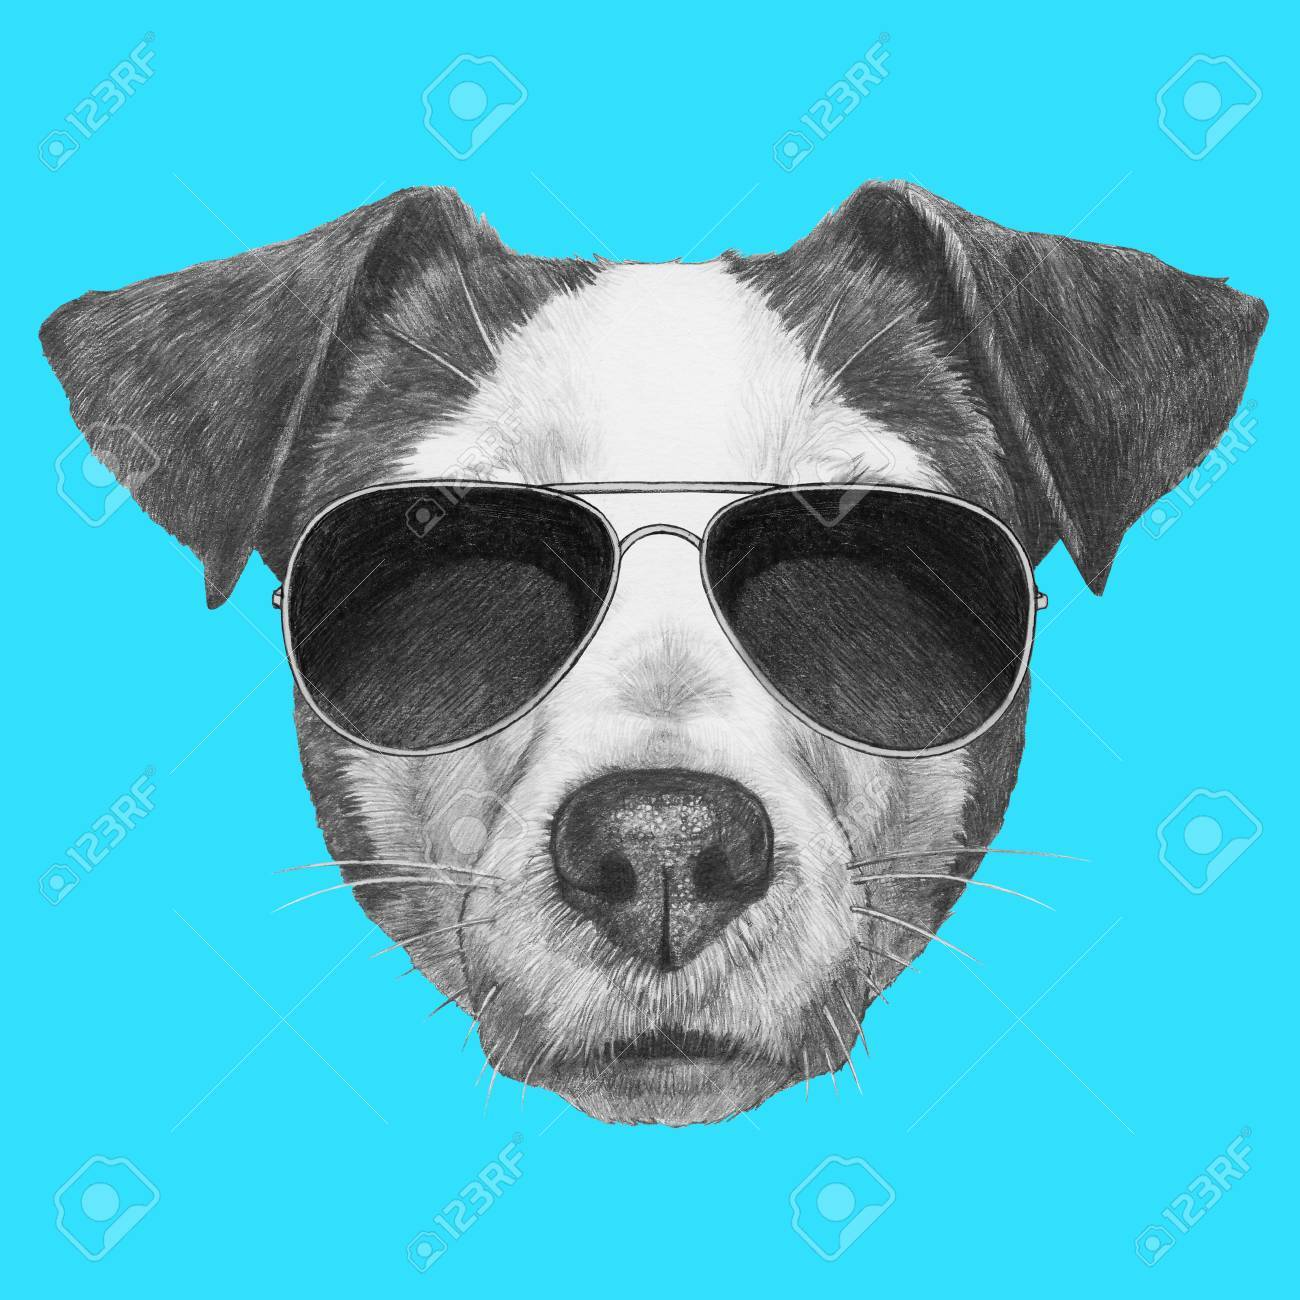 1300x1300 Original Drawing Of Jack Russell With Sunglasses. Isolated